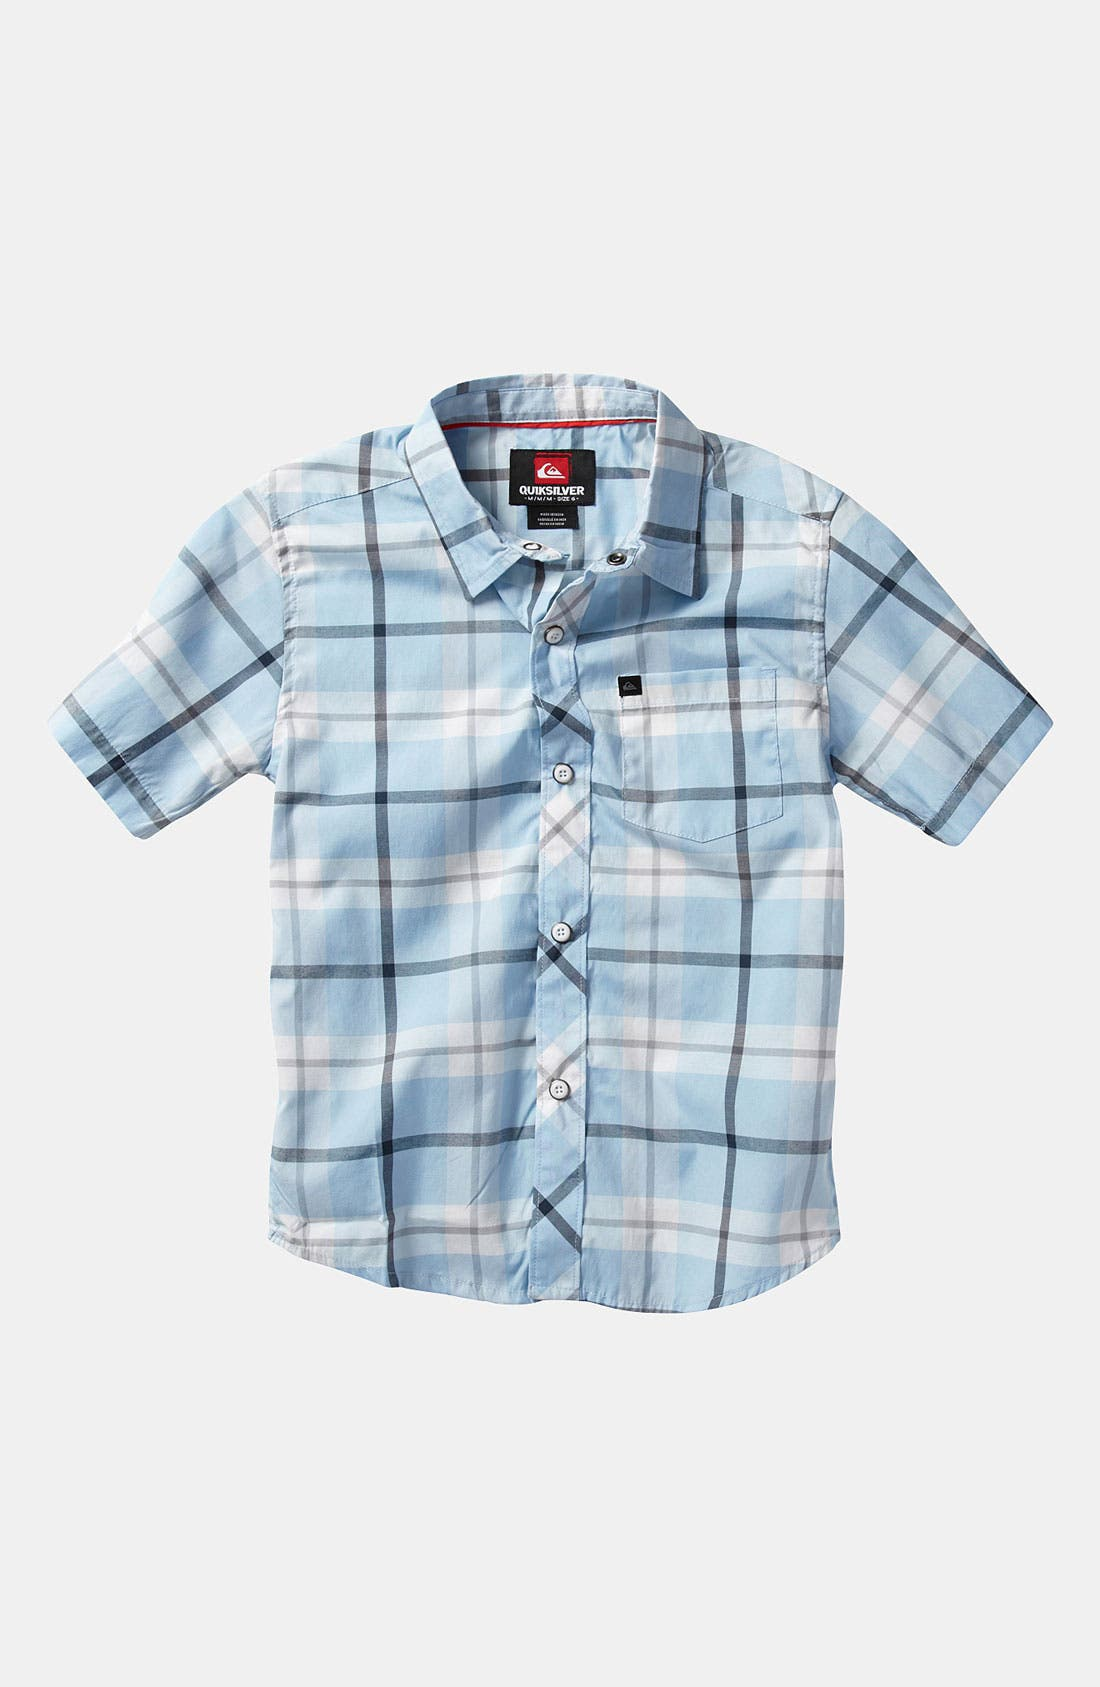 Alternate Image 1 Selected - Quiksilver 'Four Door' Woven Shirt (Little Boys)